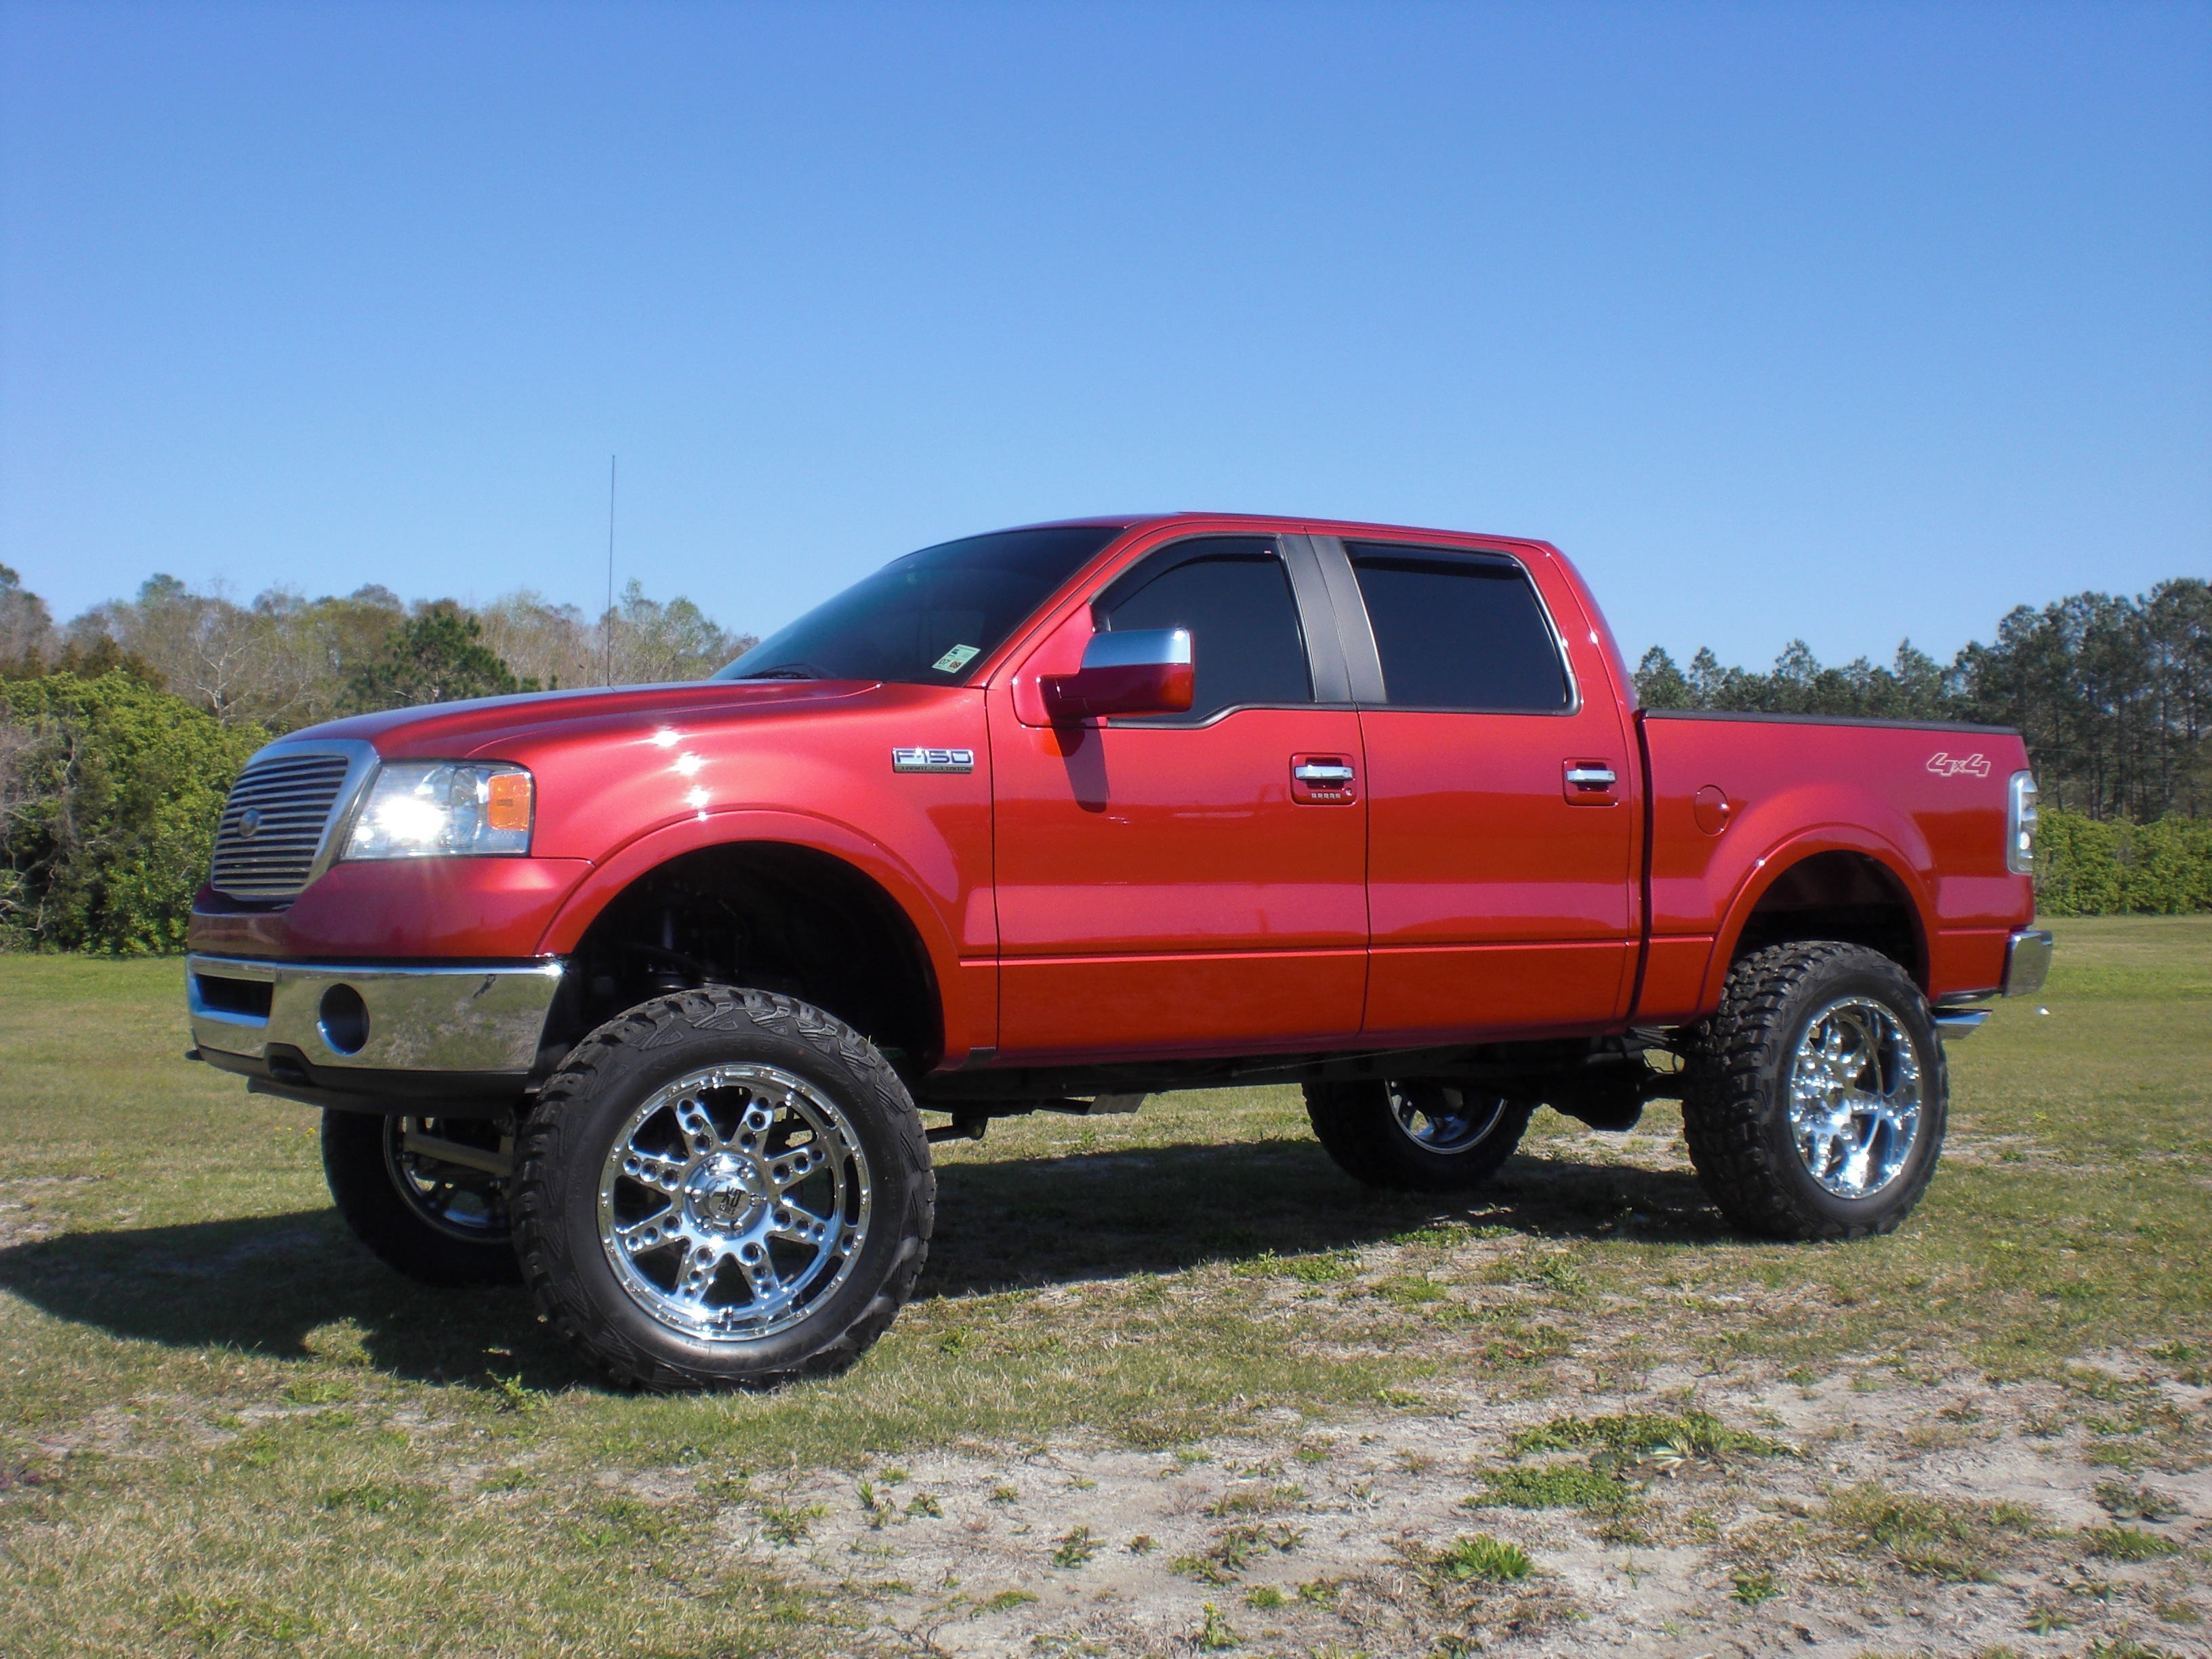 badazzf 150 2007 ford f150 regular cab - Red Ford F150 Lifted